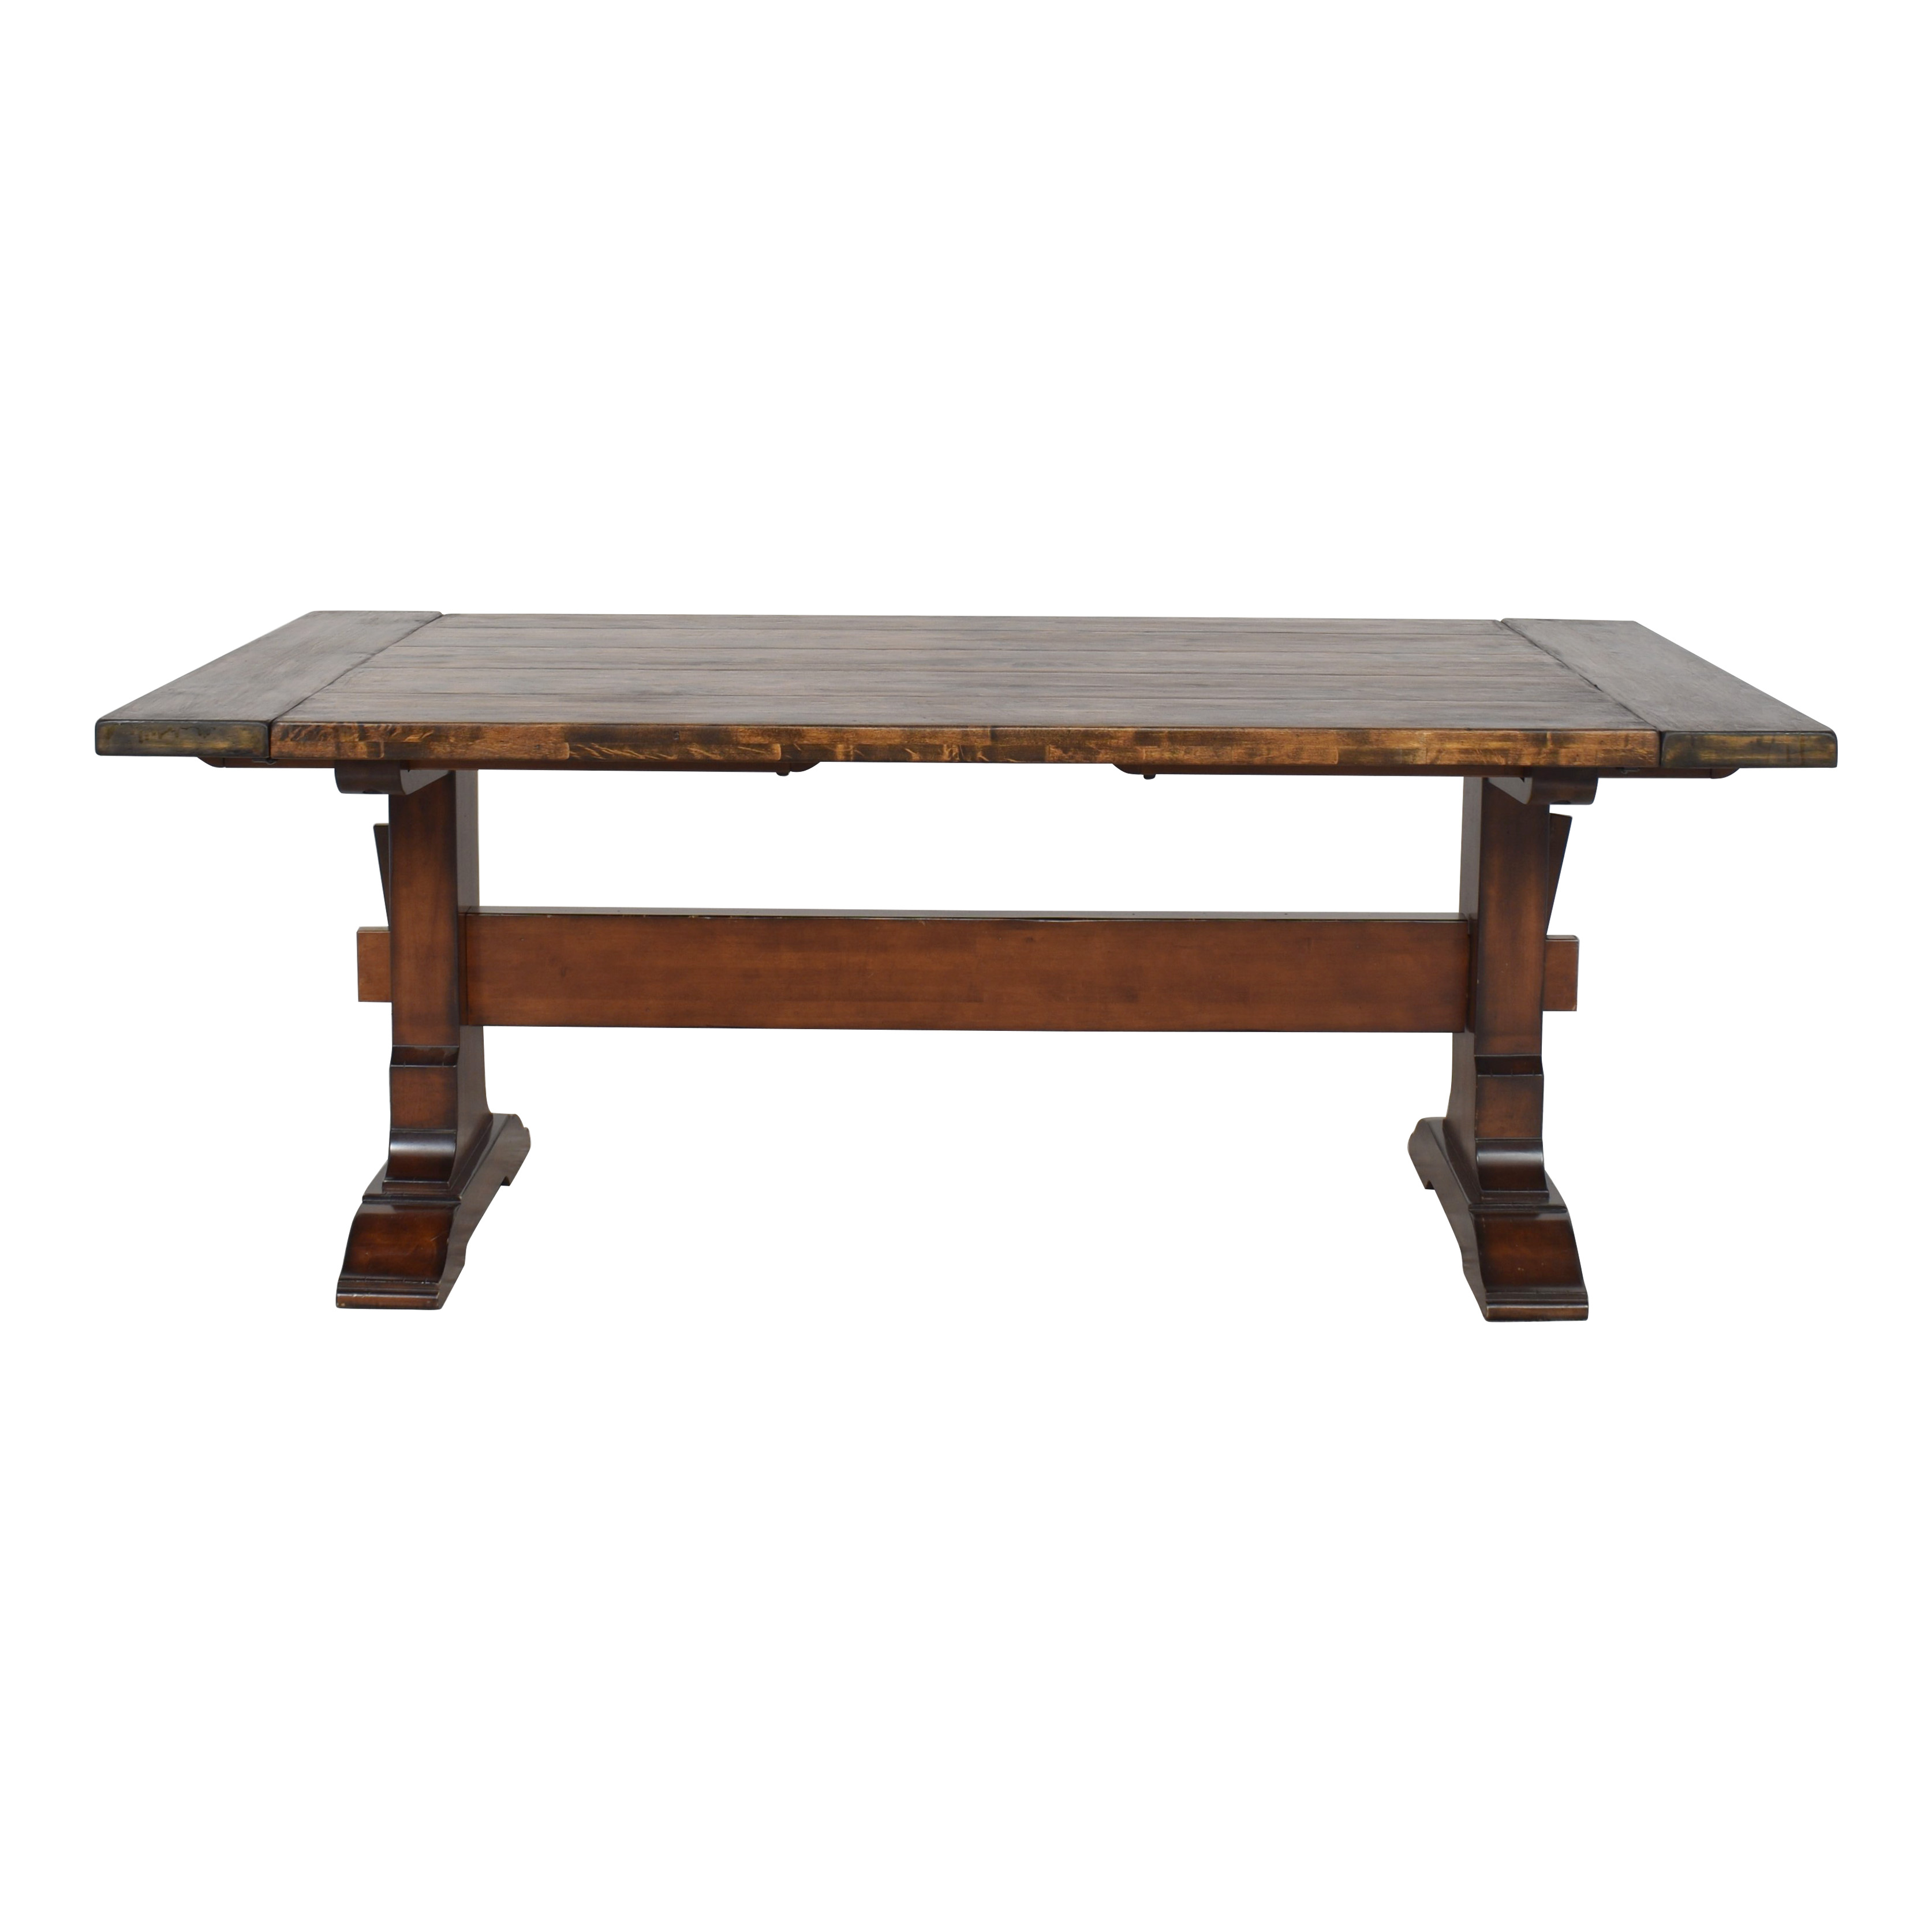 Pottery Barn Pottery Barn Trestle Dining Table brown